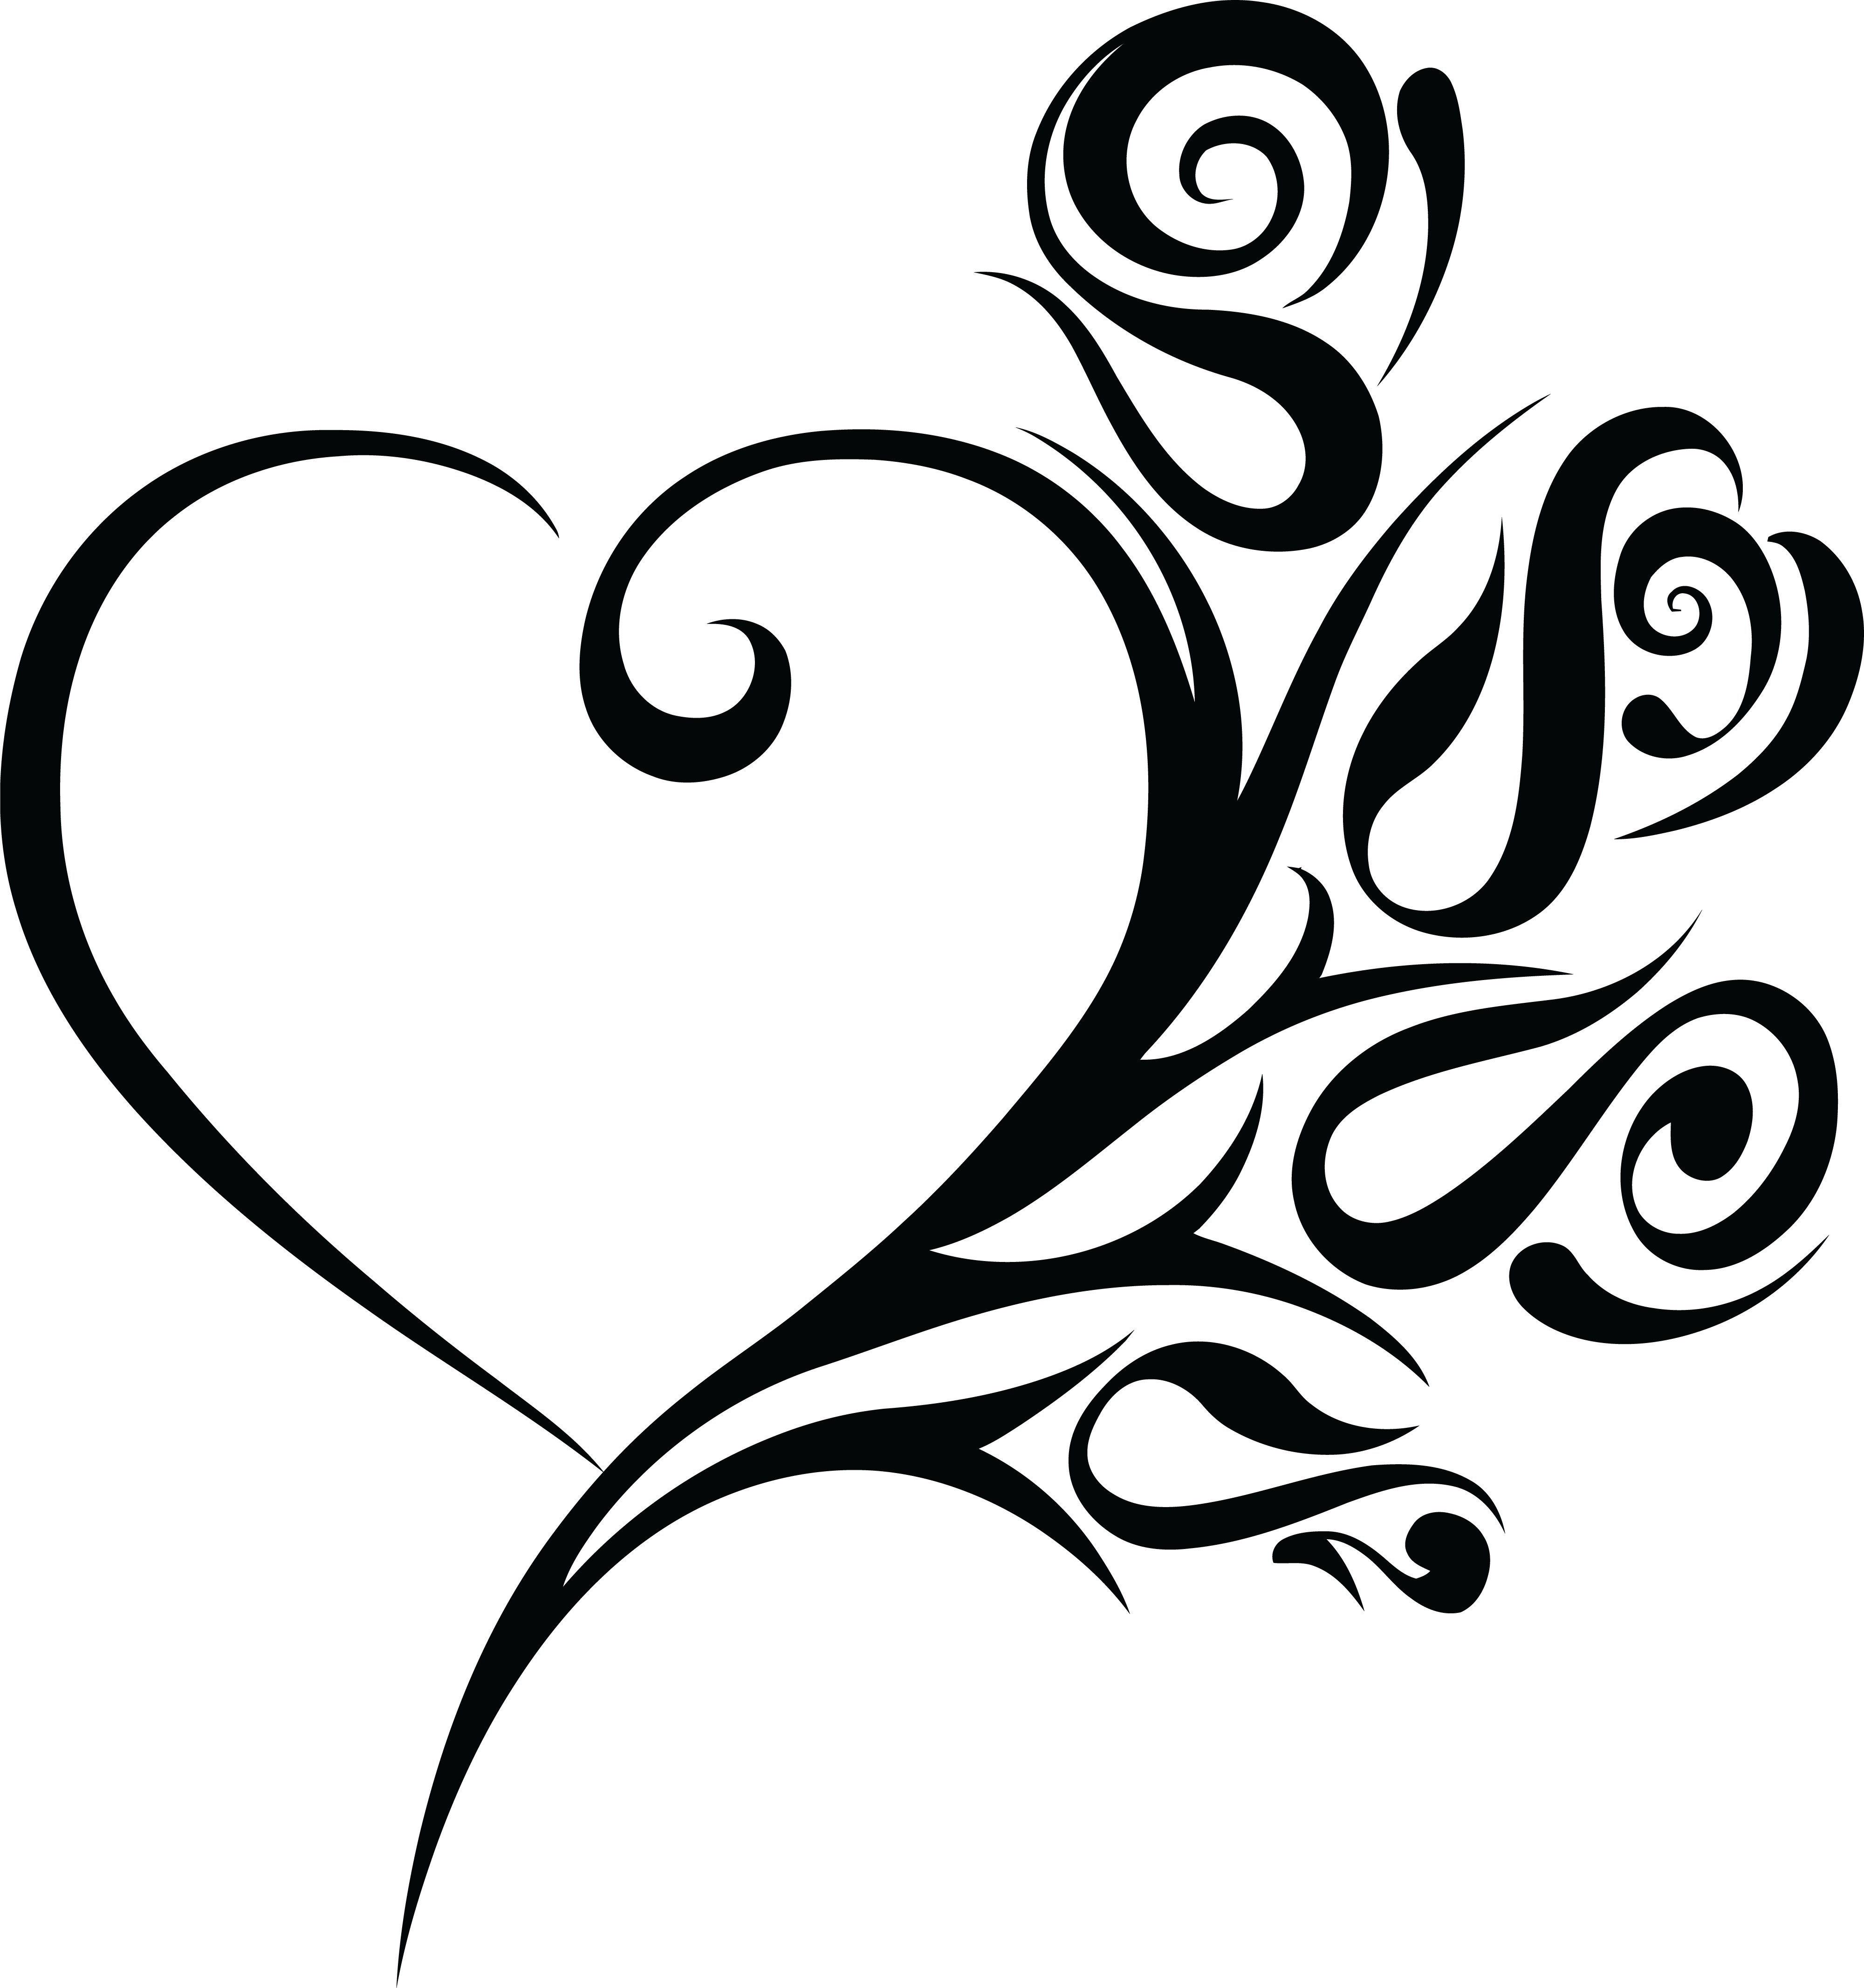 Wedding book clipart picture free 28+ Collection of Black And White Swirl Heart Clipart | High quality ... picture free